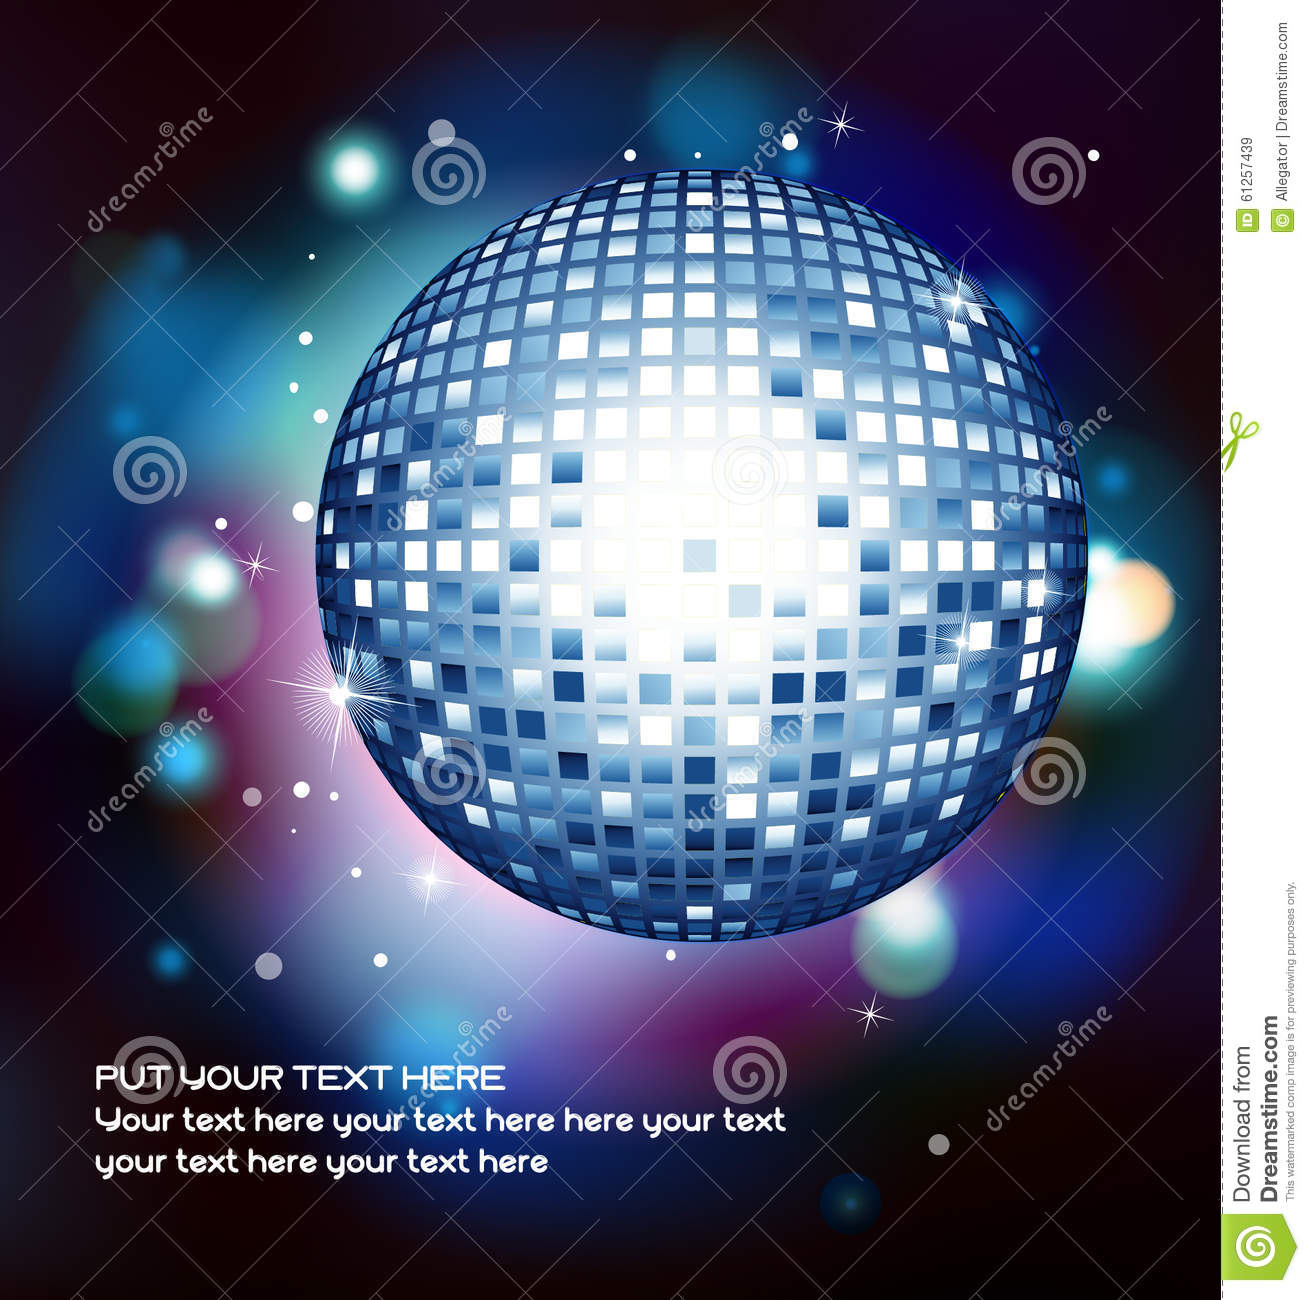 Vector illustration with a discoball